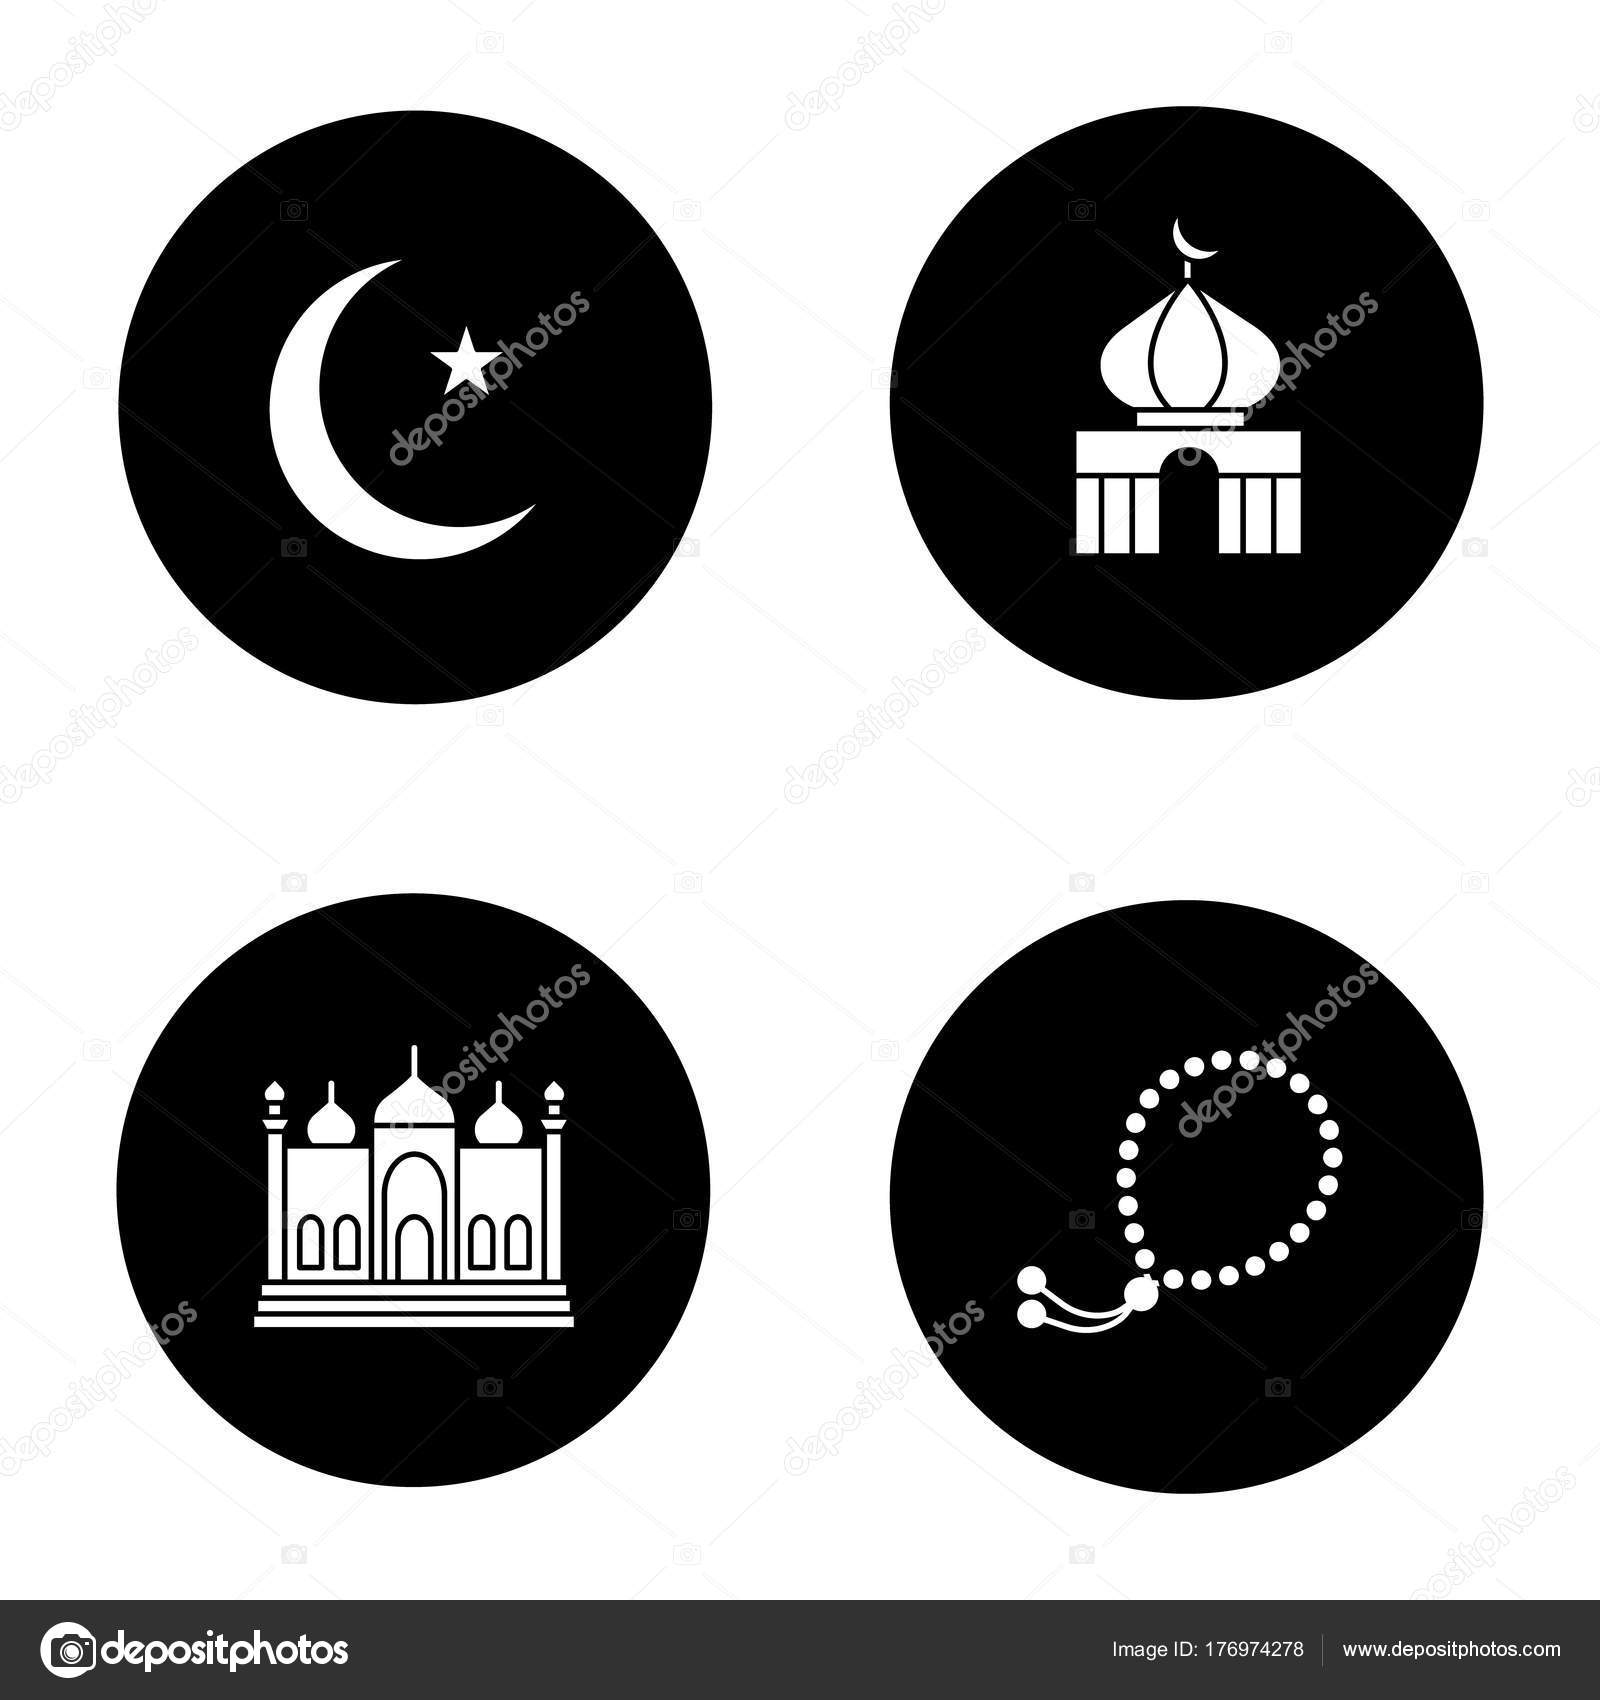 Islamic culture glyph icons set crescent moon star mosques misbaha islamic culture glyph icons set crescent moon star mosques misbaha stock vector biocorpaavc Images